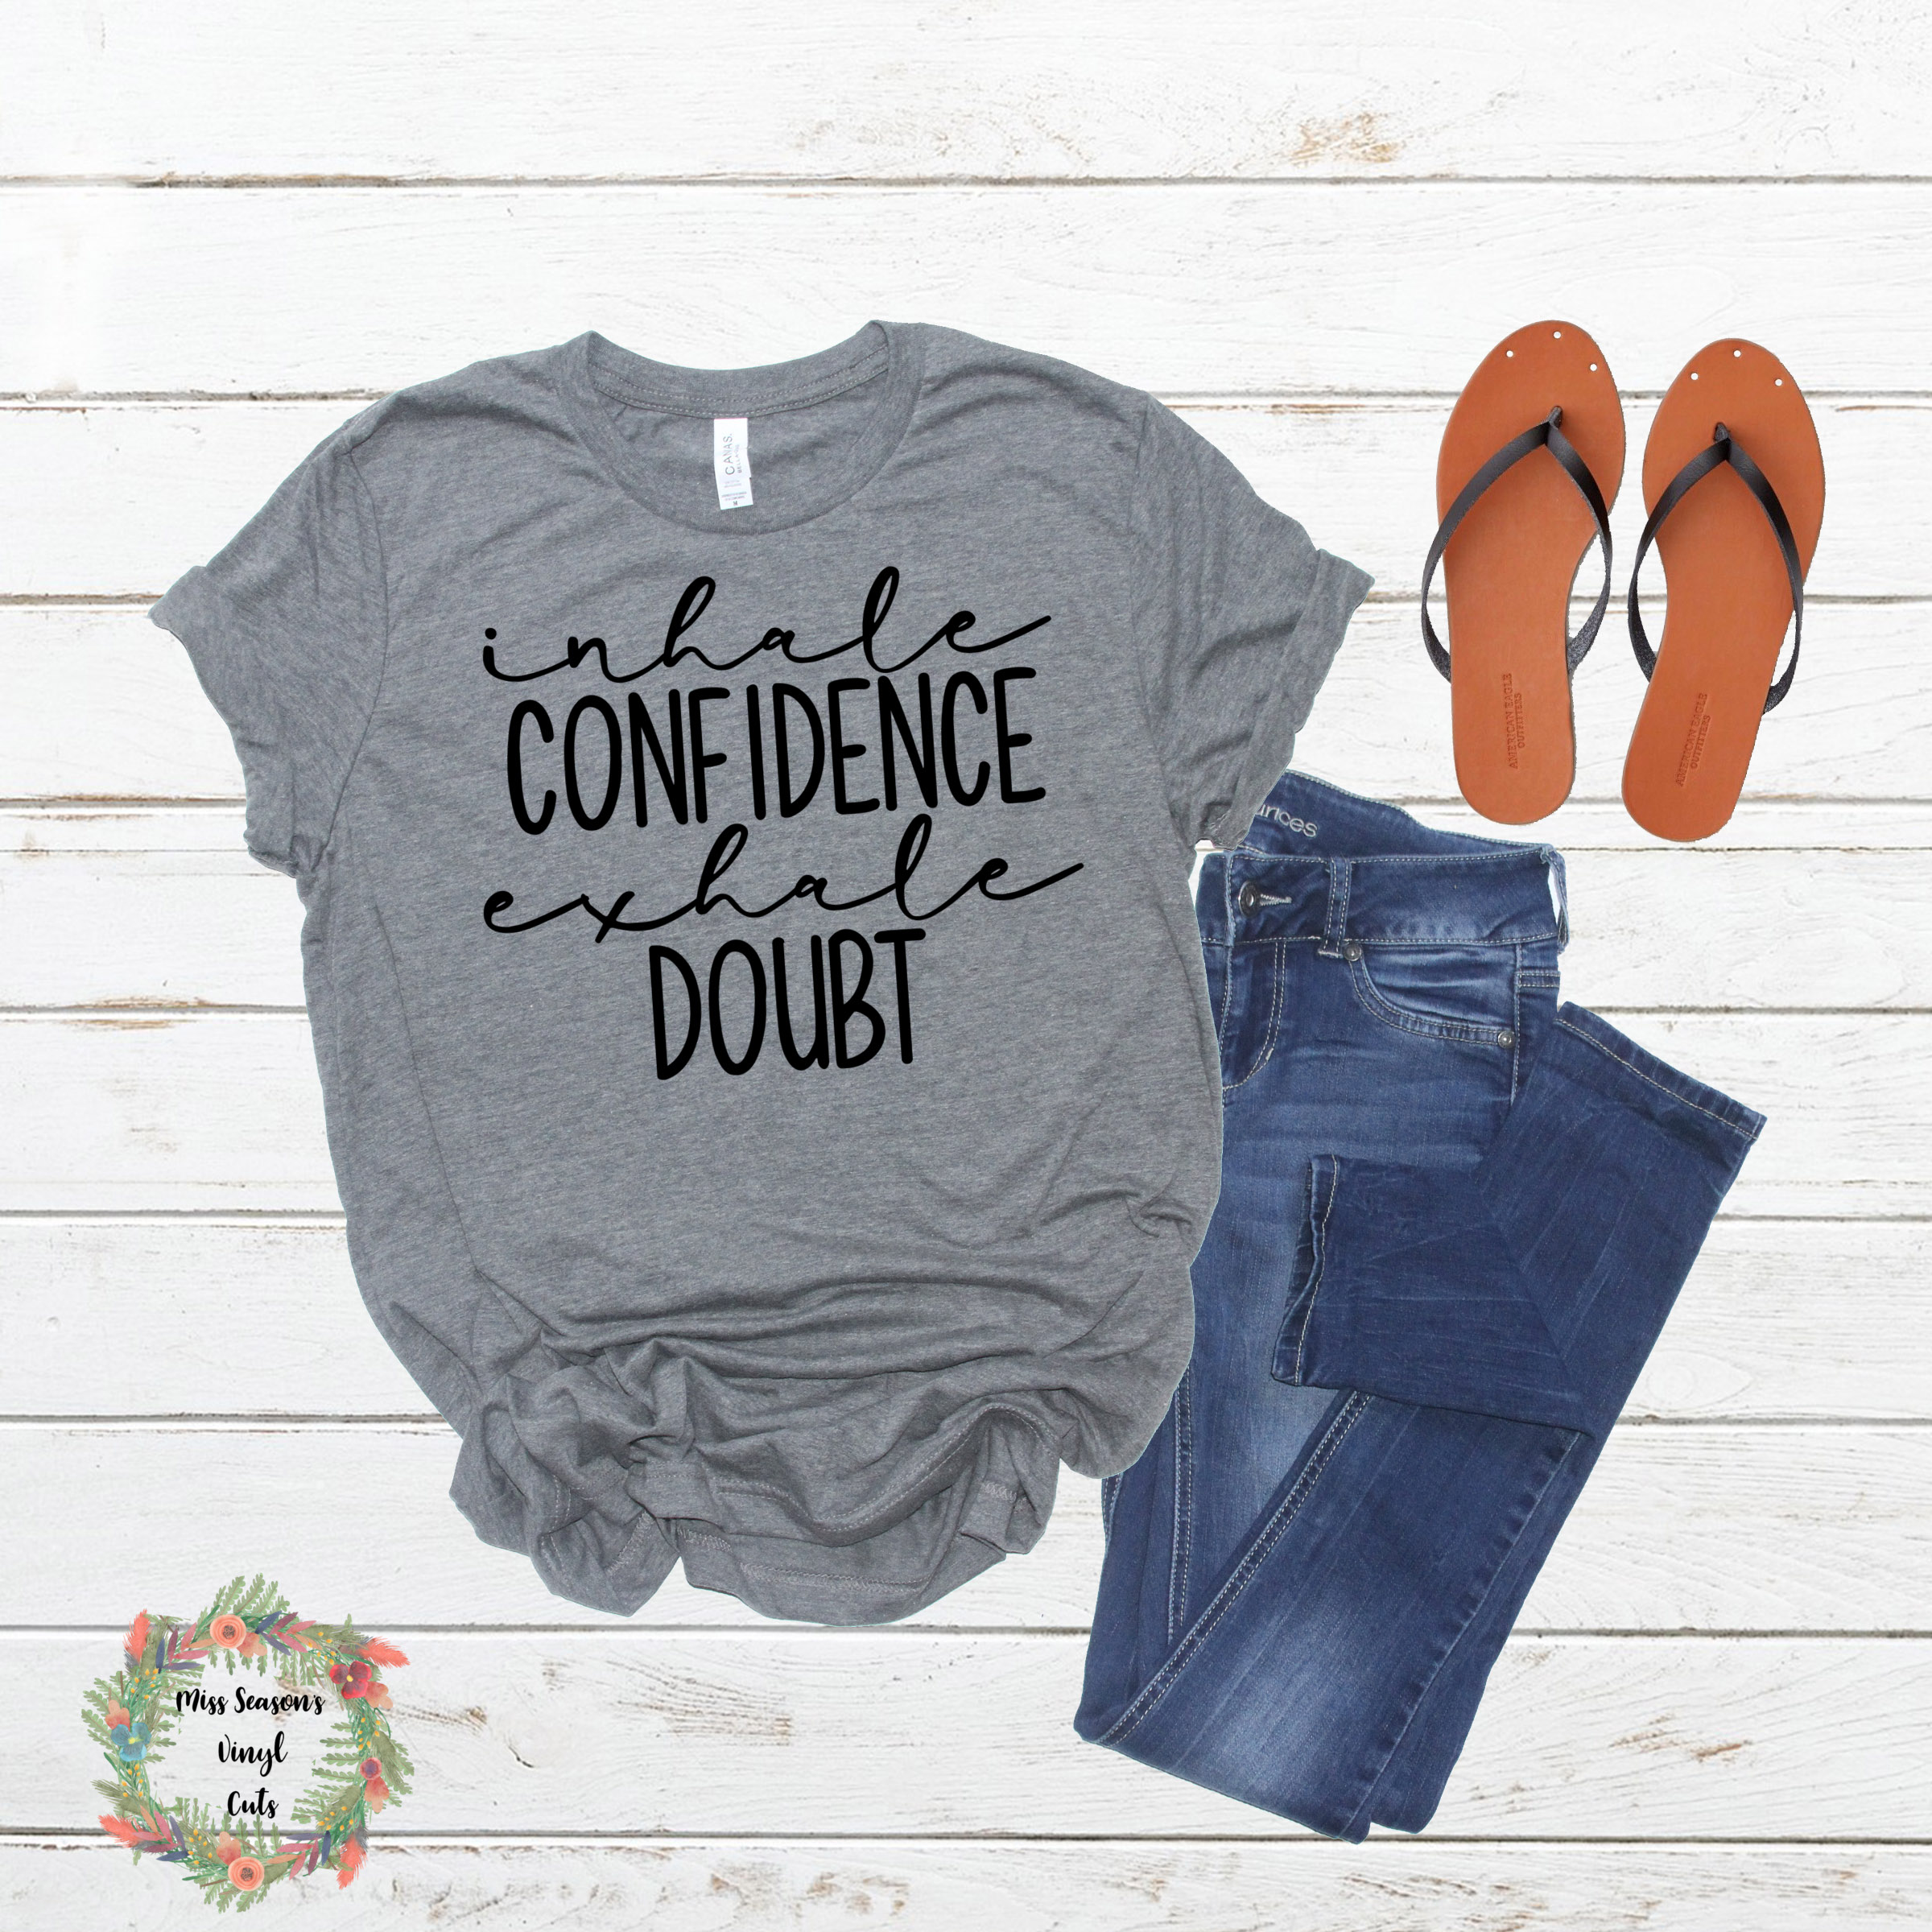 Inhale Confidence Exhale Doubt SVG Png Dxf eps example image 3